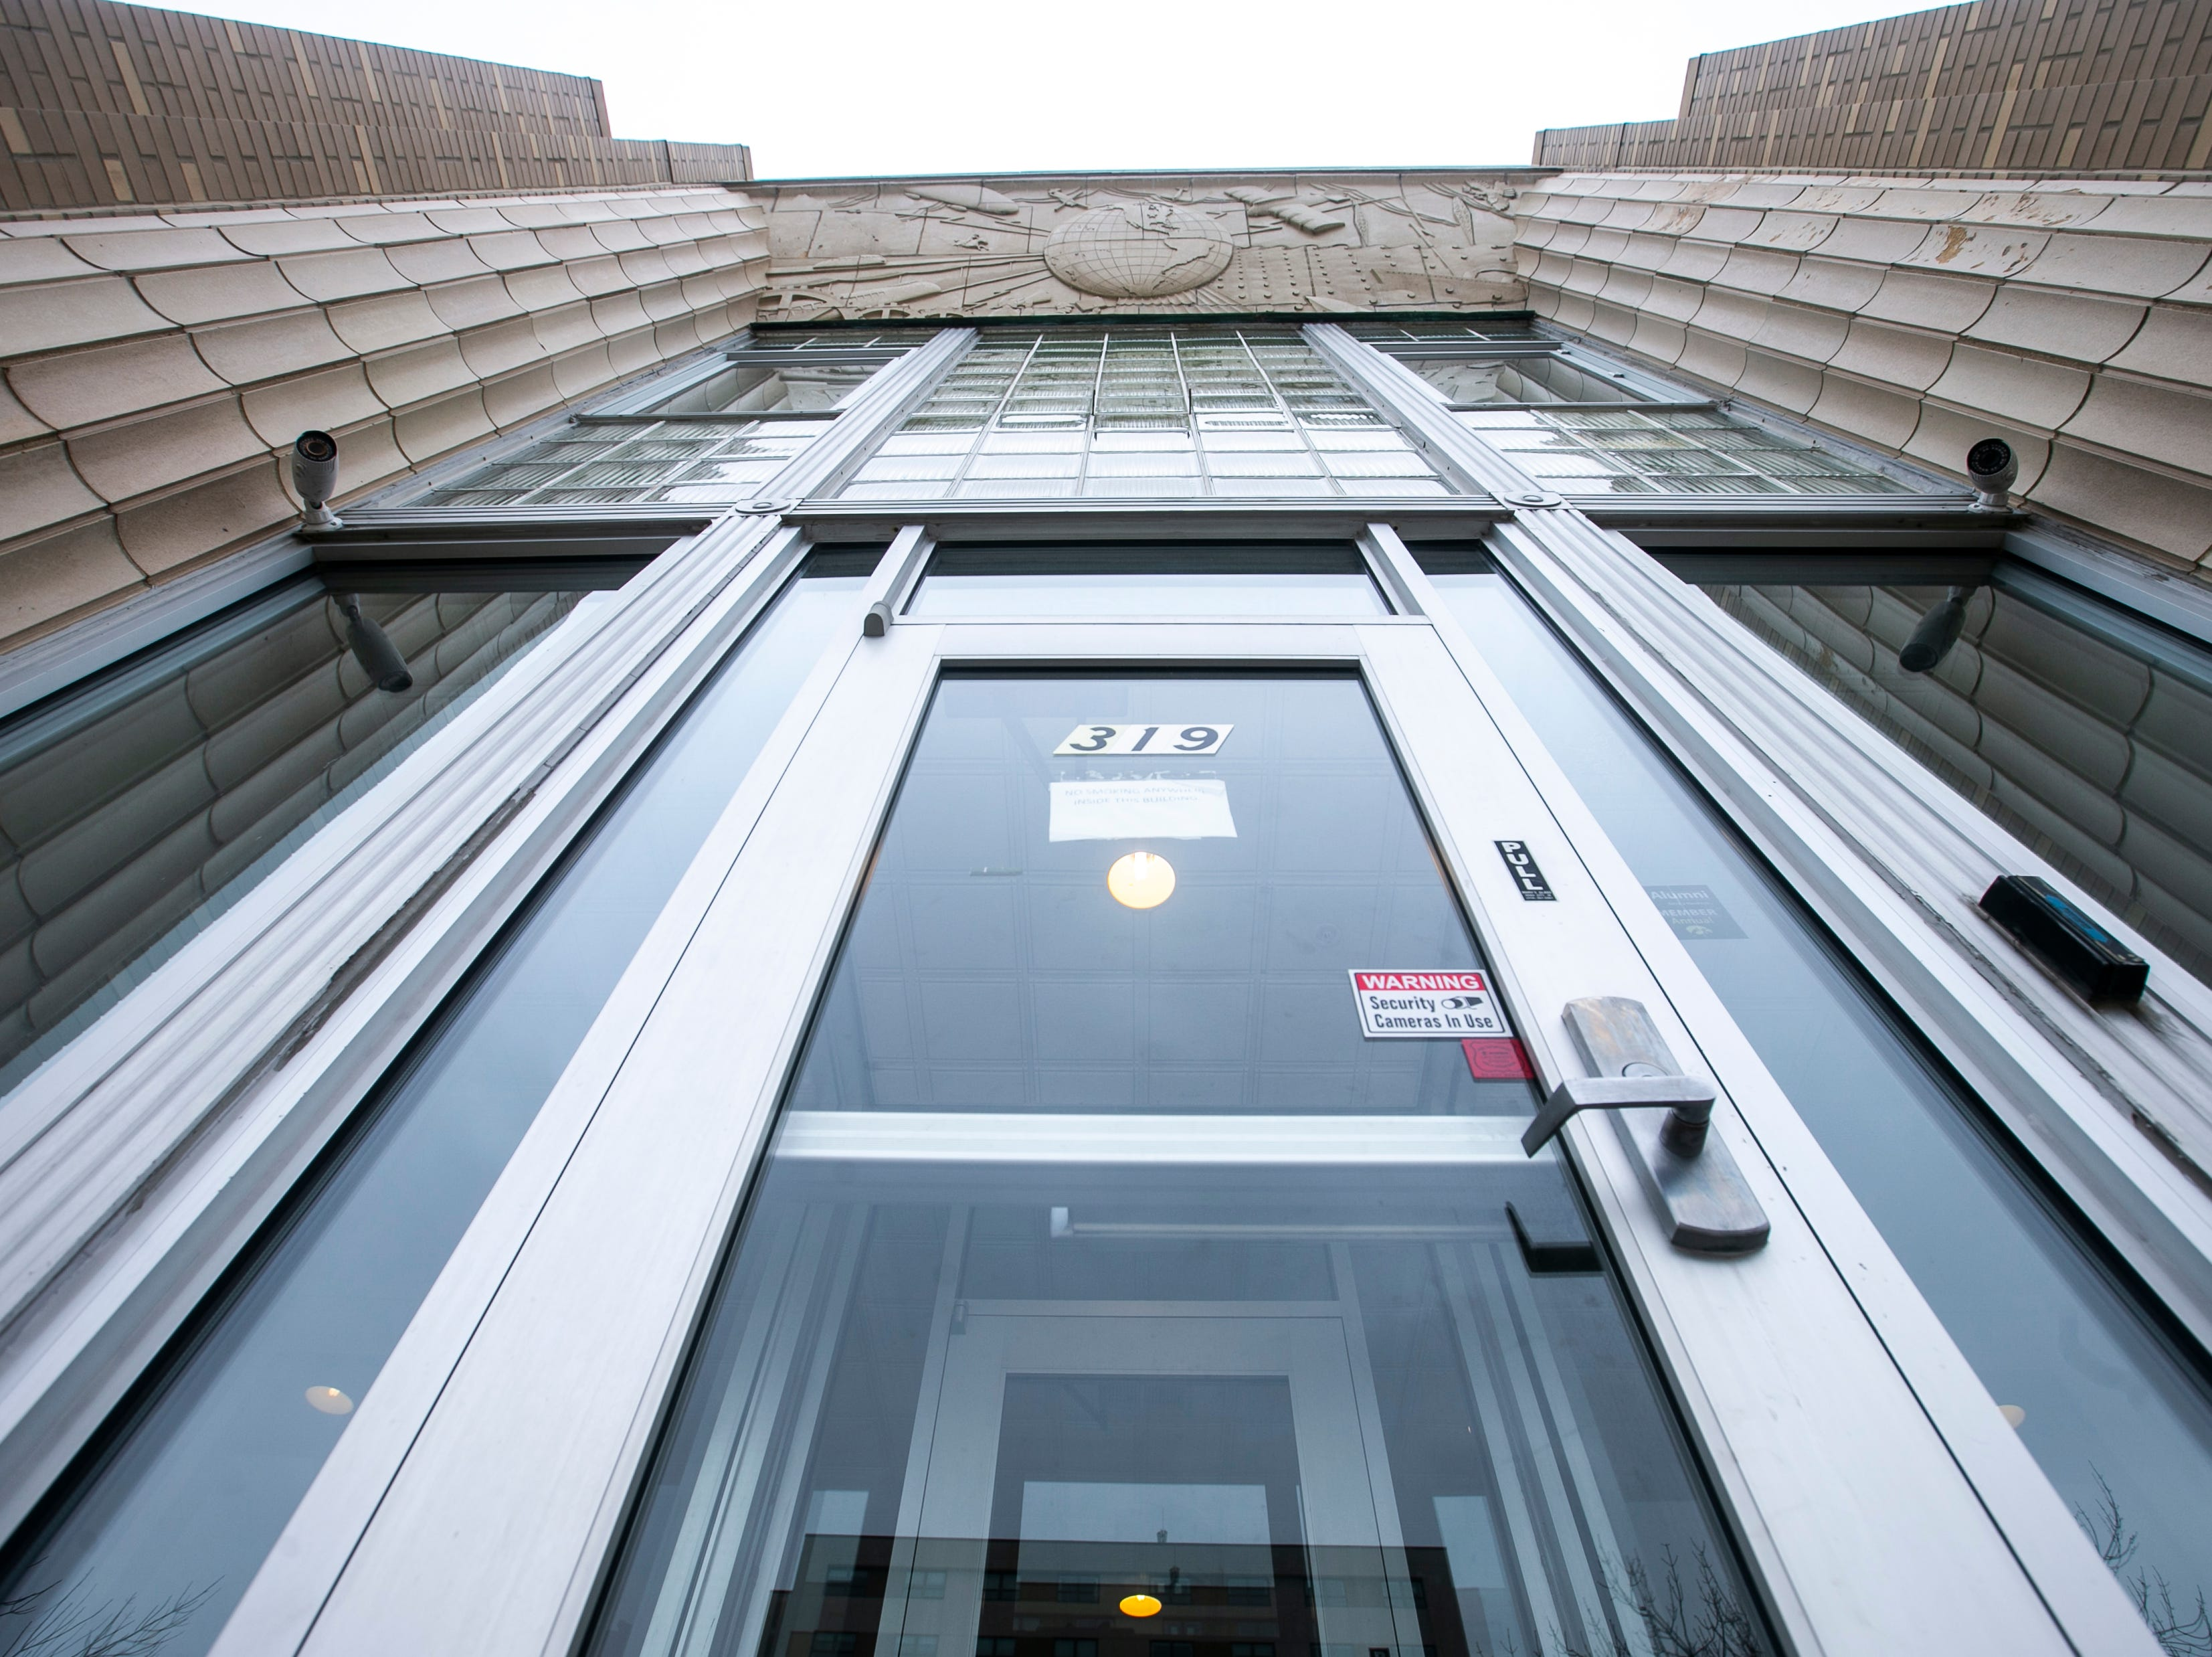 Columns are reflected in the two-story glass entryway of Citizen Building Apartments on Friday, Jan. 18, 2019, at 319 East Washington Street in Iowa City, Iowa. The building was completed in 1937 and housed the Iowa City Press-Citizen newsroom until 1991 when it moved to a new building on North Dodge Street.